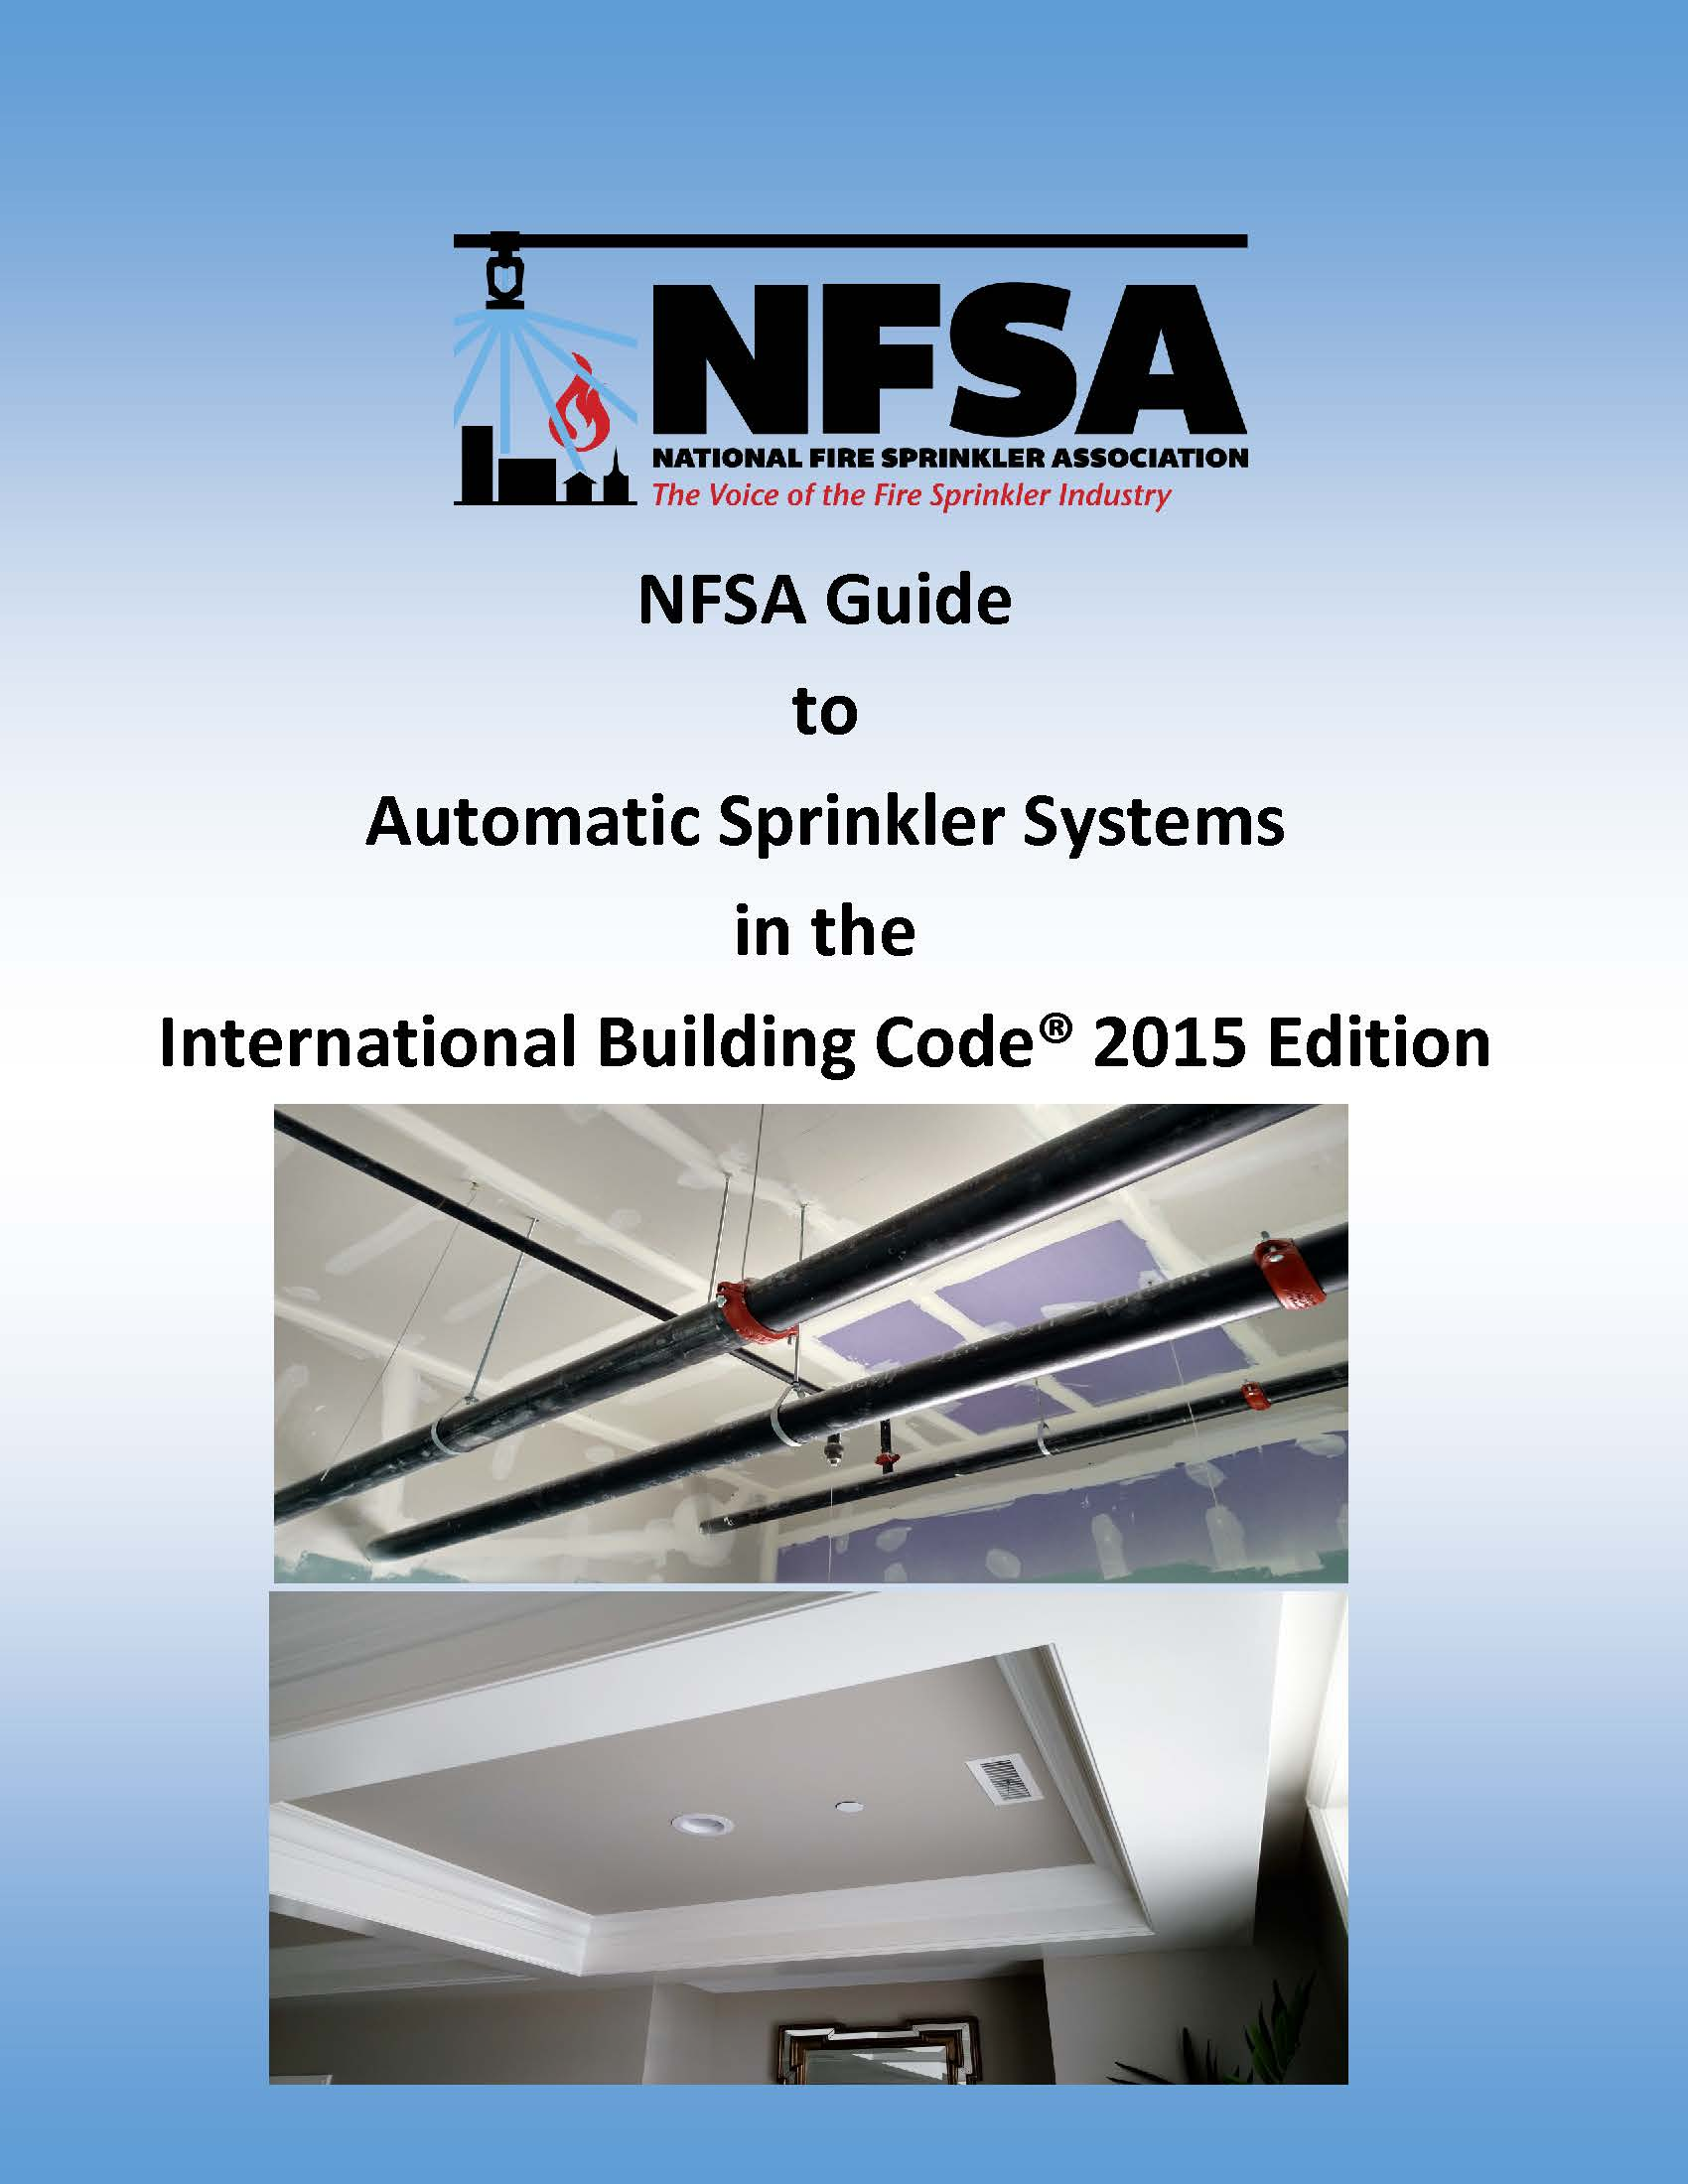 NFSA Guide, Automatic Sprinkler Systems (IBC2015)